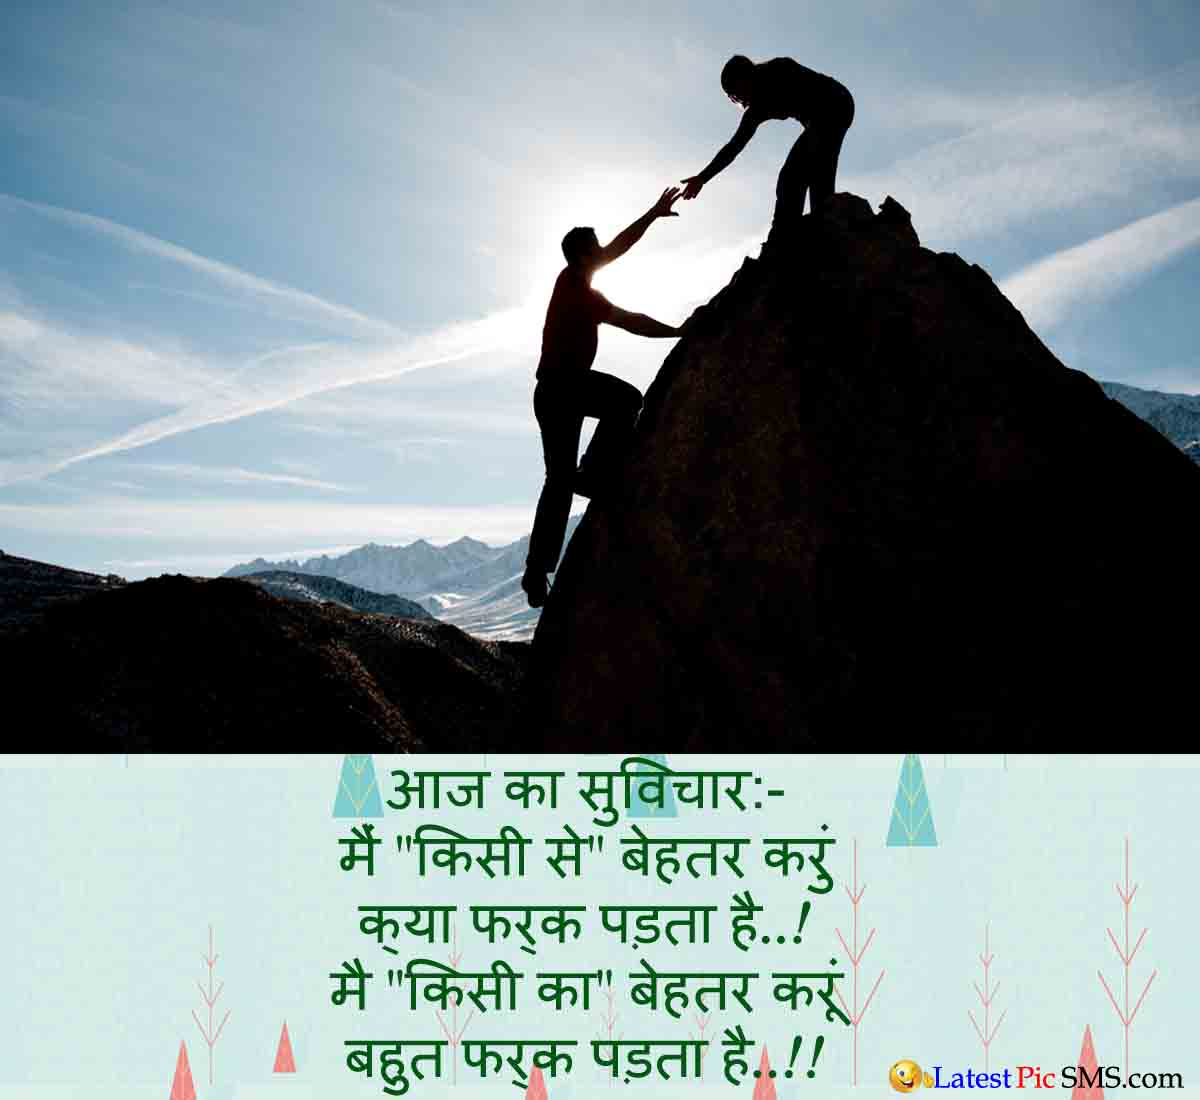 Today's Thought In Hindi